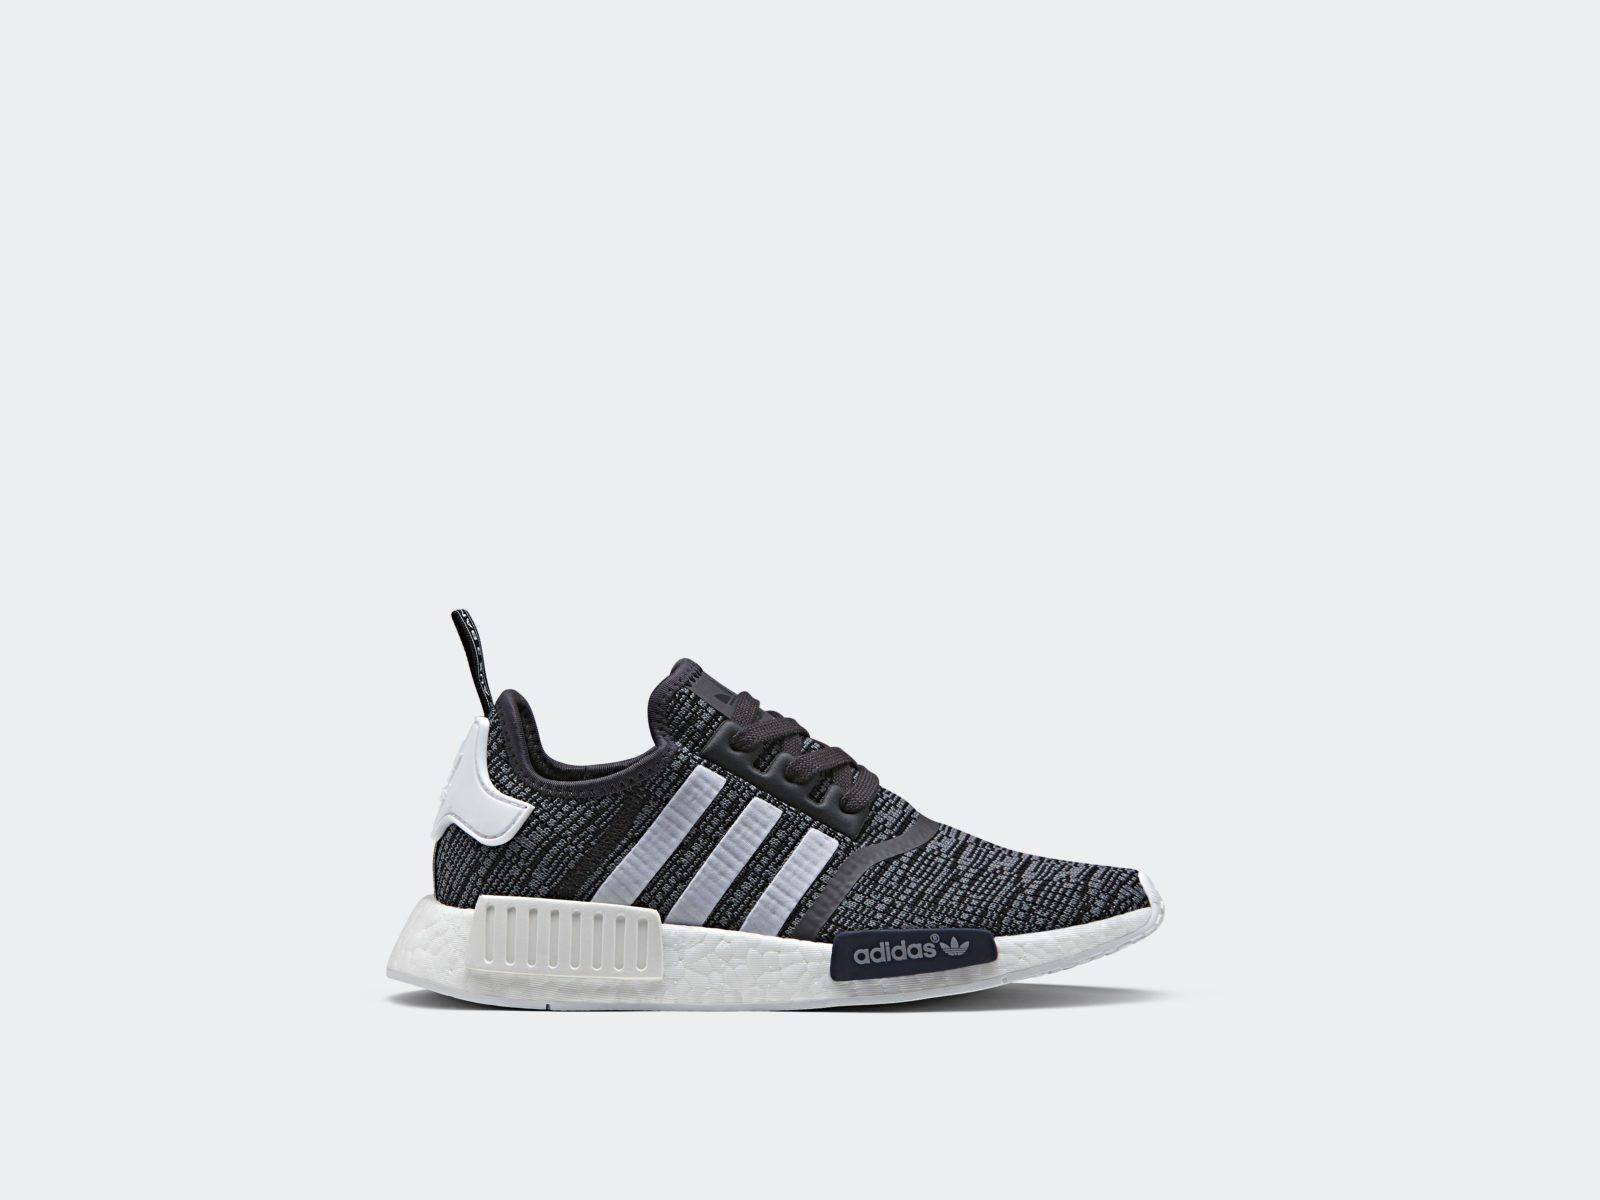 """edc002c796608 The Clean   Gorgeous adidas NMD R1 """"Midnight Grey"""" Drops Next Month ."""